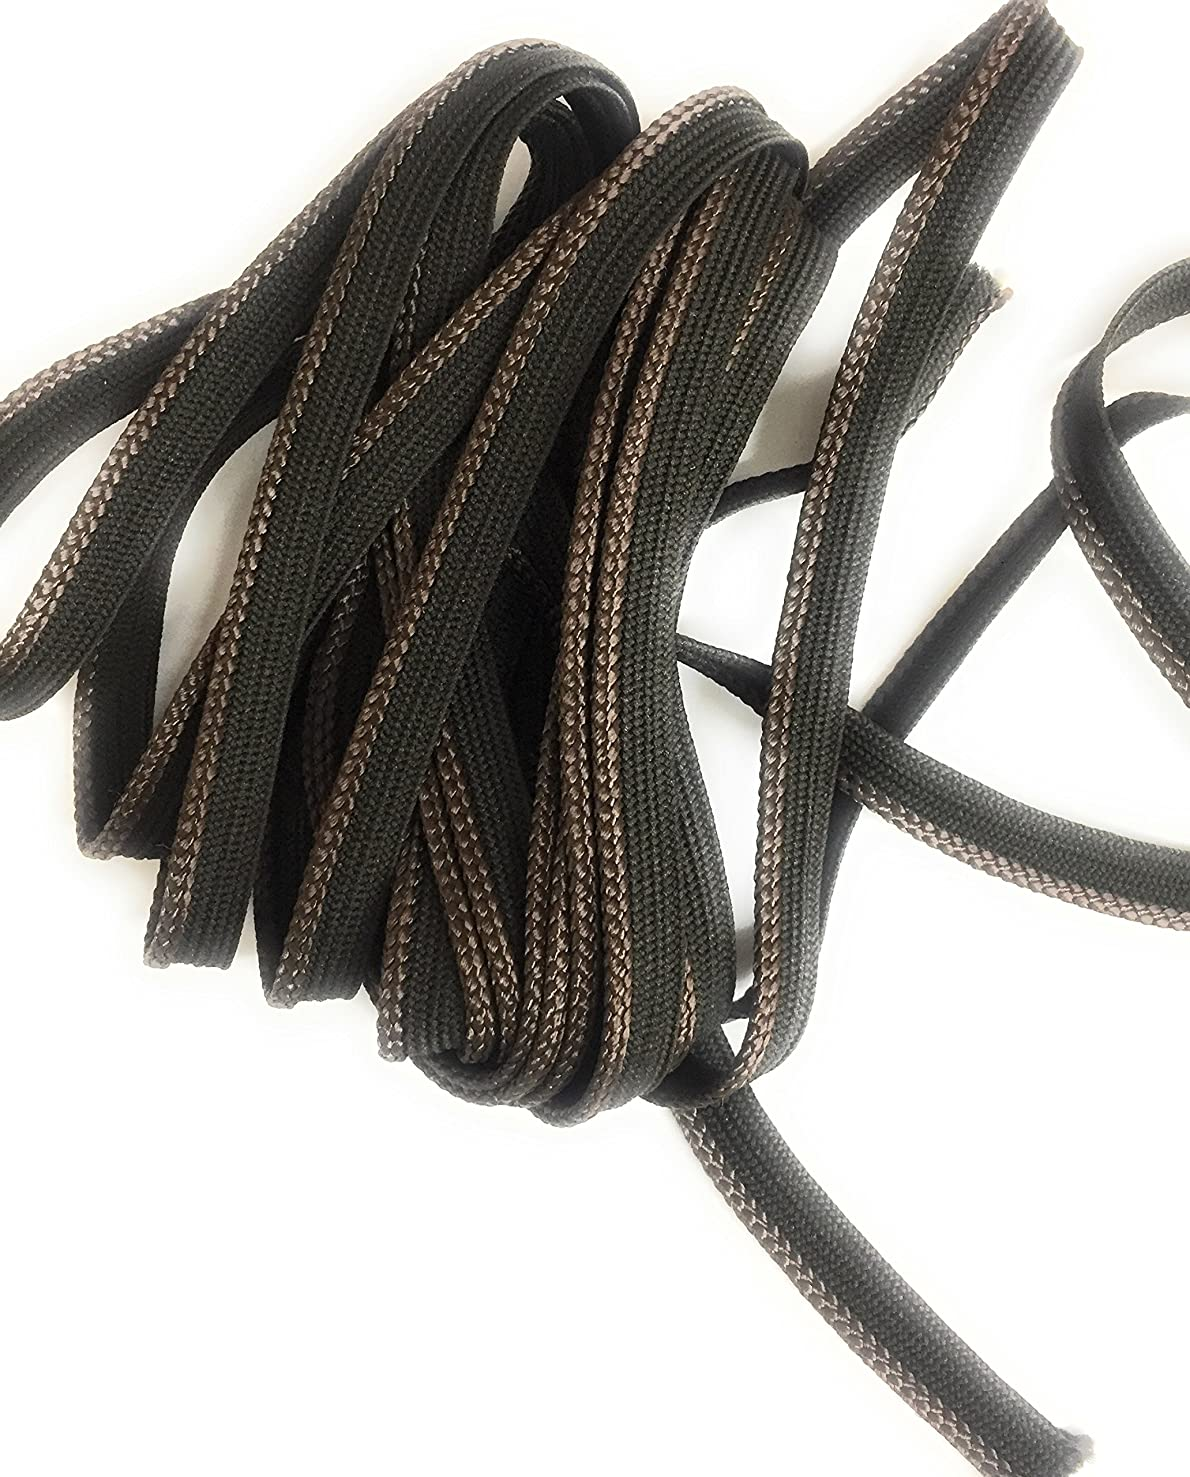 Brown Piping , Cord Edge Trim , LIP Cord for Clothing Pillows, Lamps, Draperies 5 Yards Pi-110